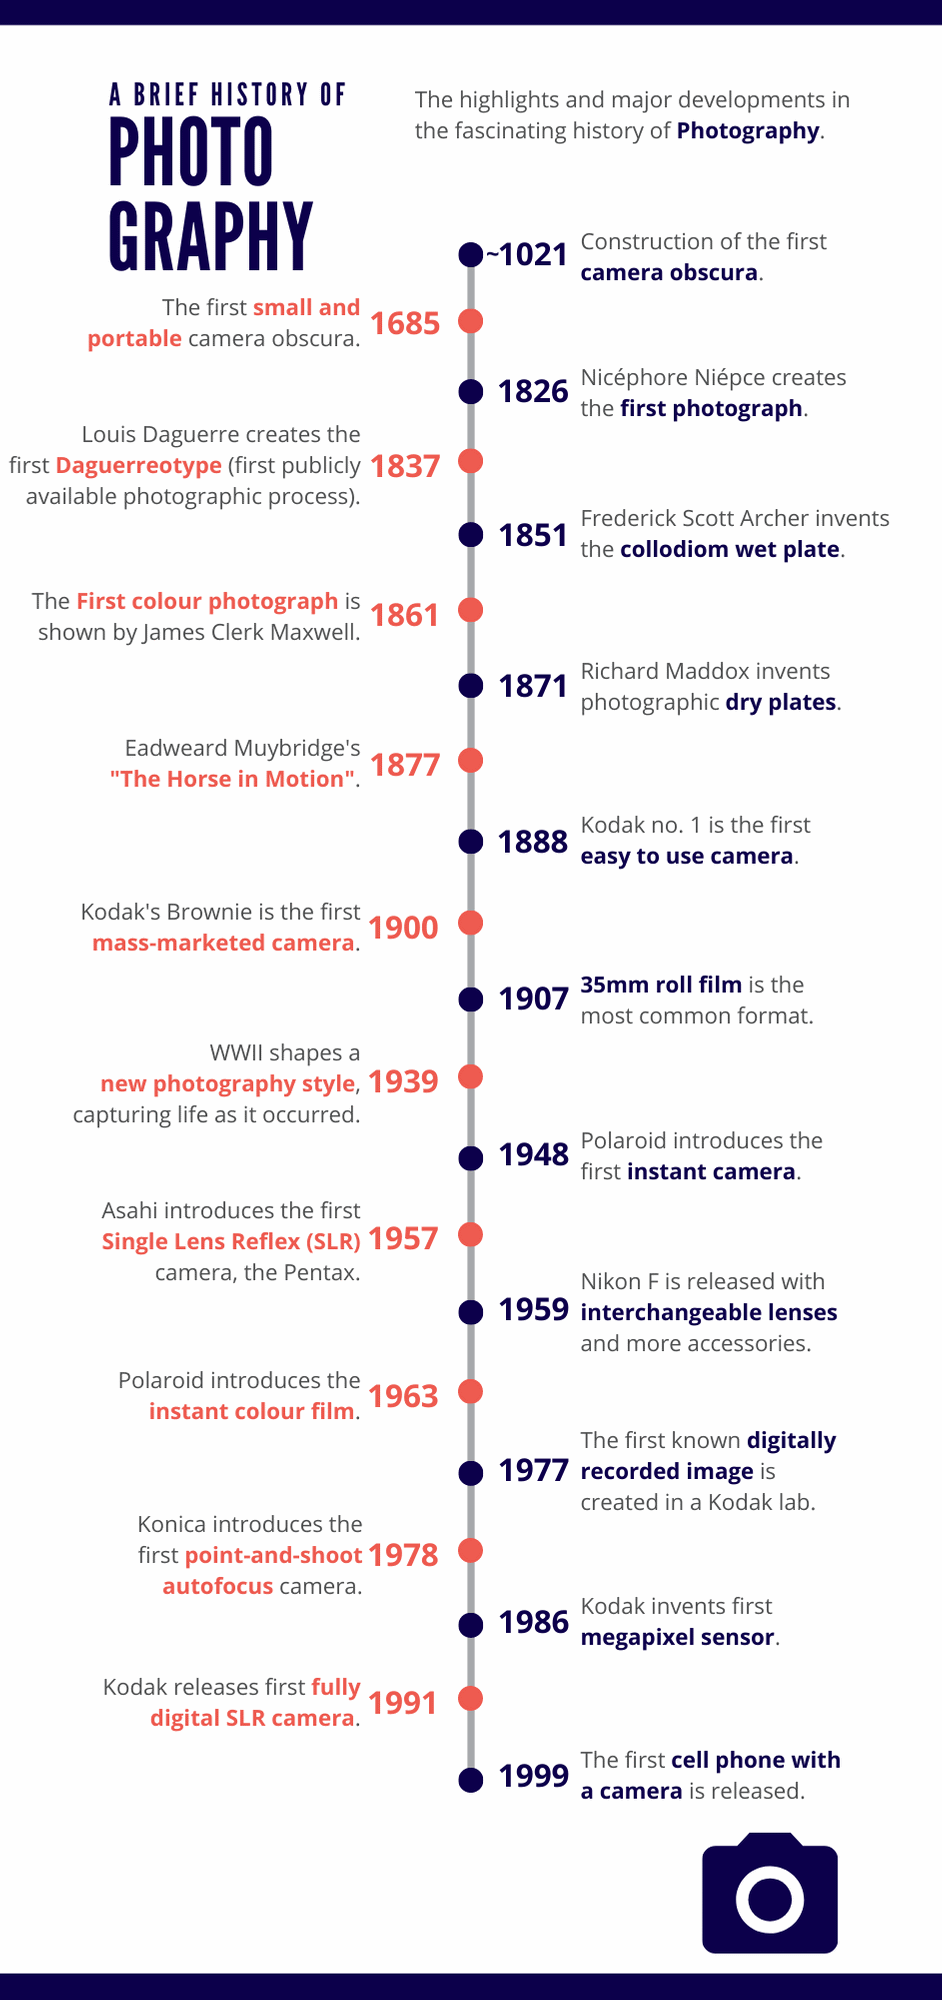 Br24 Infographic A brief history of photography: Timeline with highlights and major developments in the history of photography from 1021 to 1999